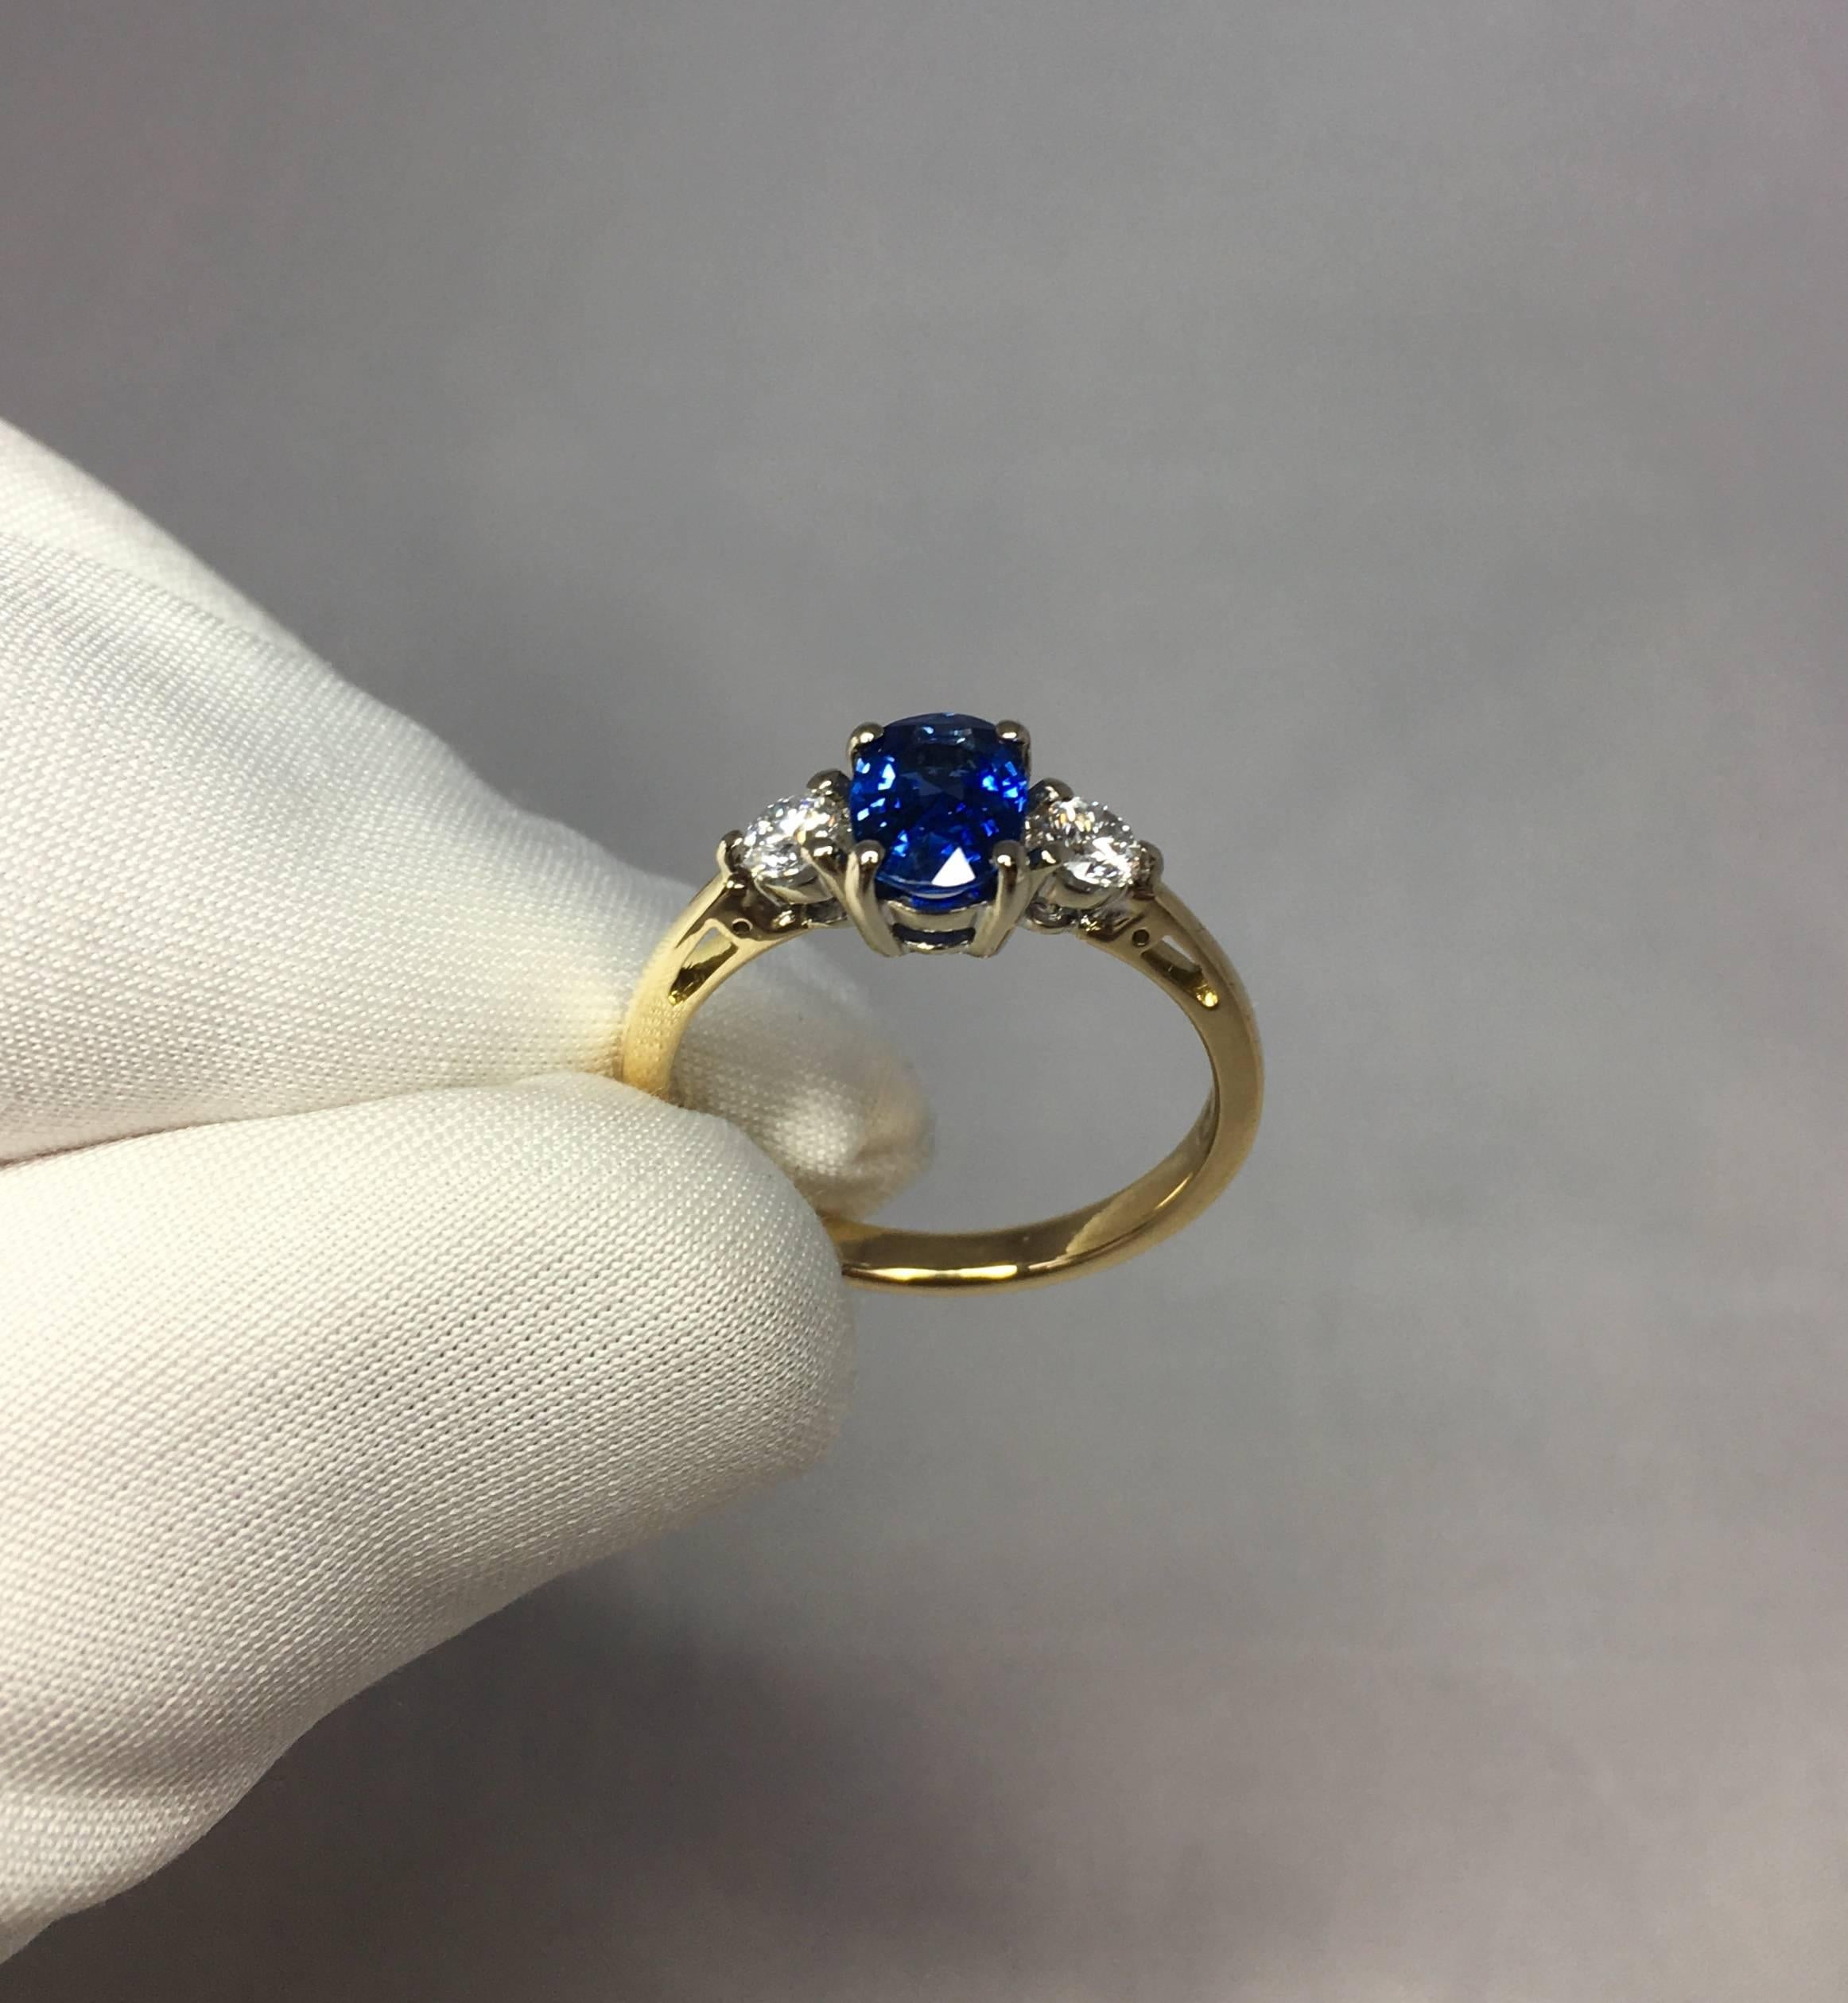 stones colored sapphire kry james engagement blog free rings jewelers trends ring ig